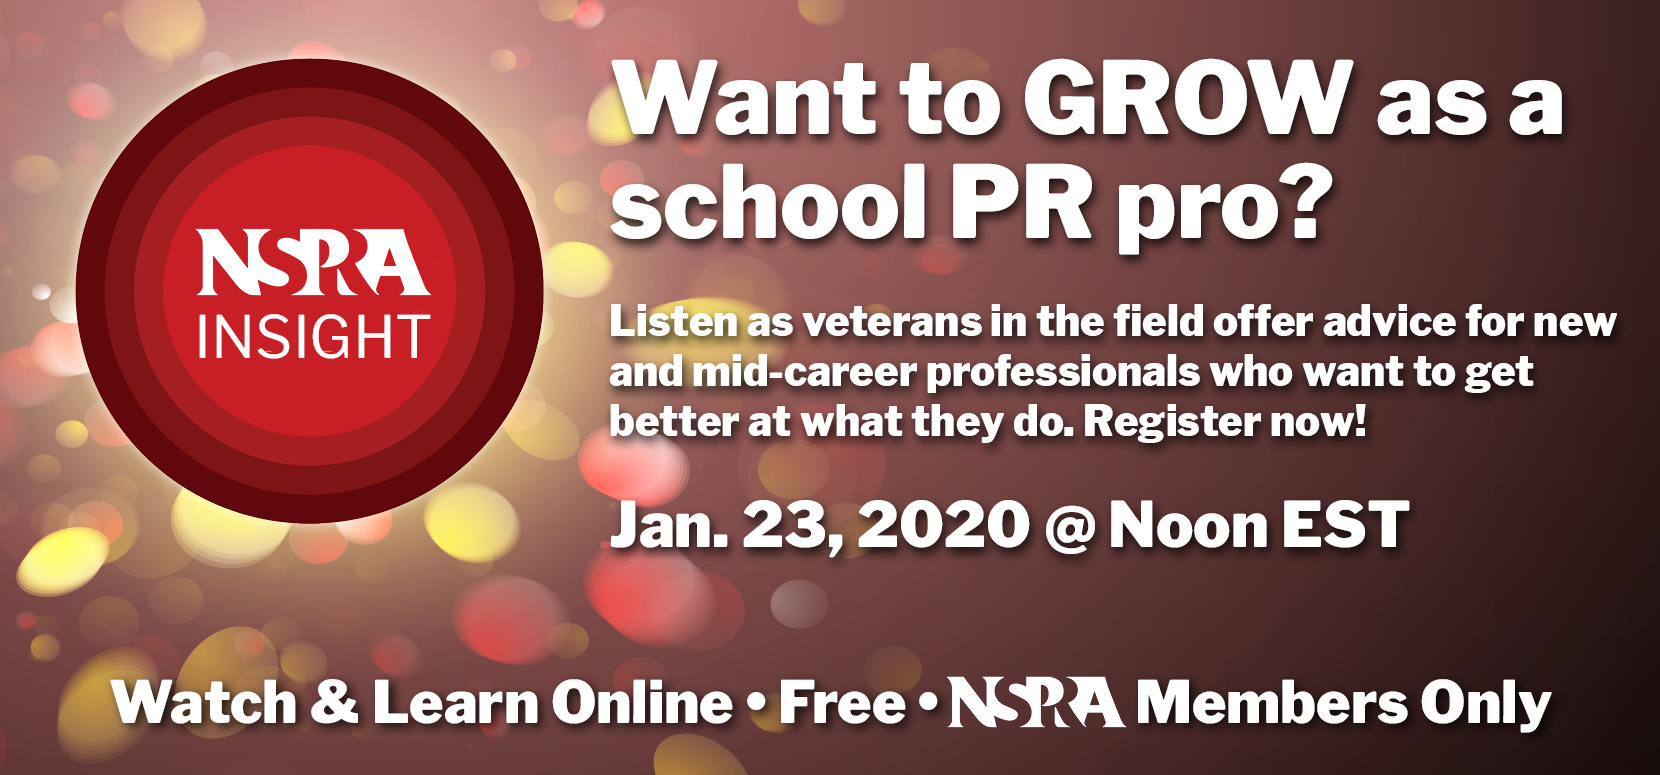 NSPRA Insight graphic with text: Want to GROW as a school PR pro?